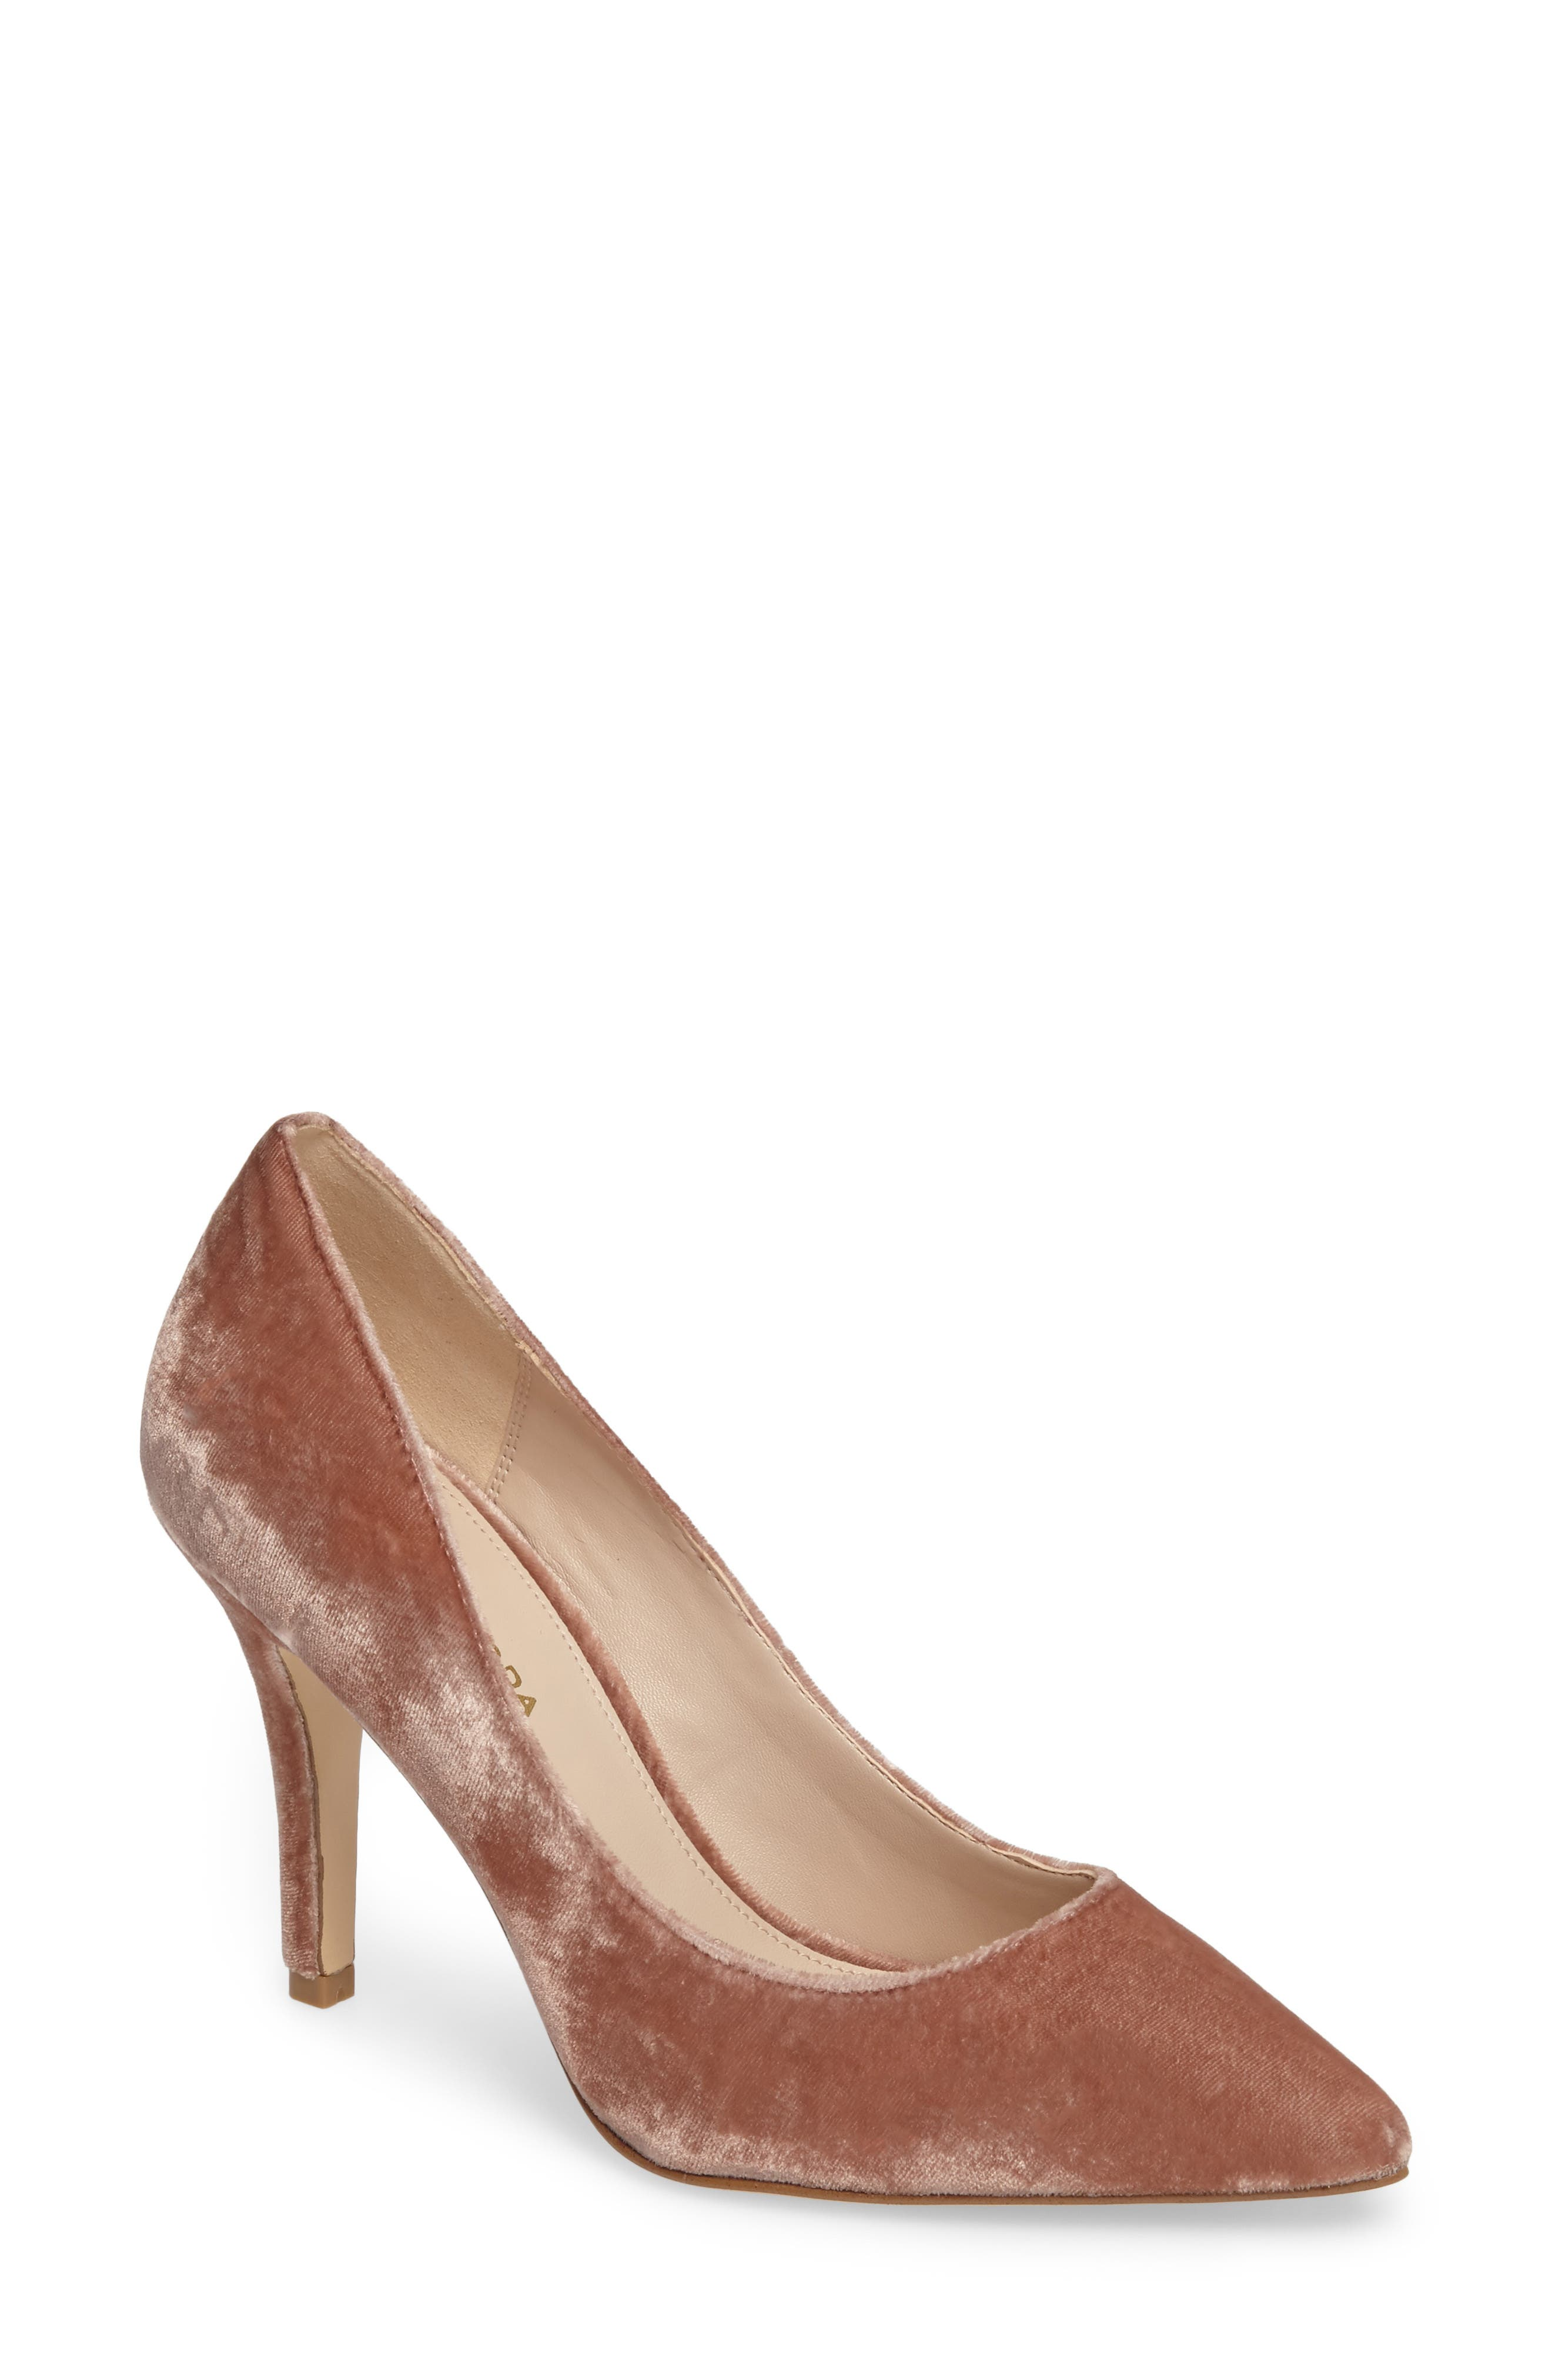 Alternate Image 1 Selected - Pelle Moda Vally2 Pointy Toe Pump (Women)